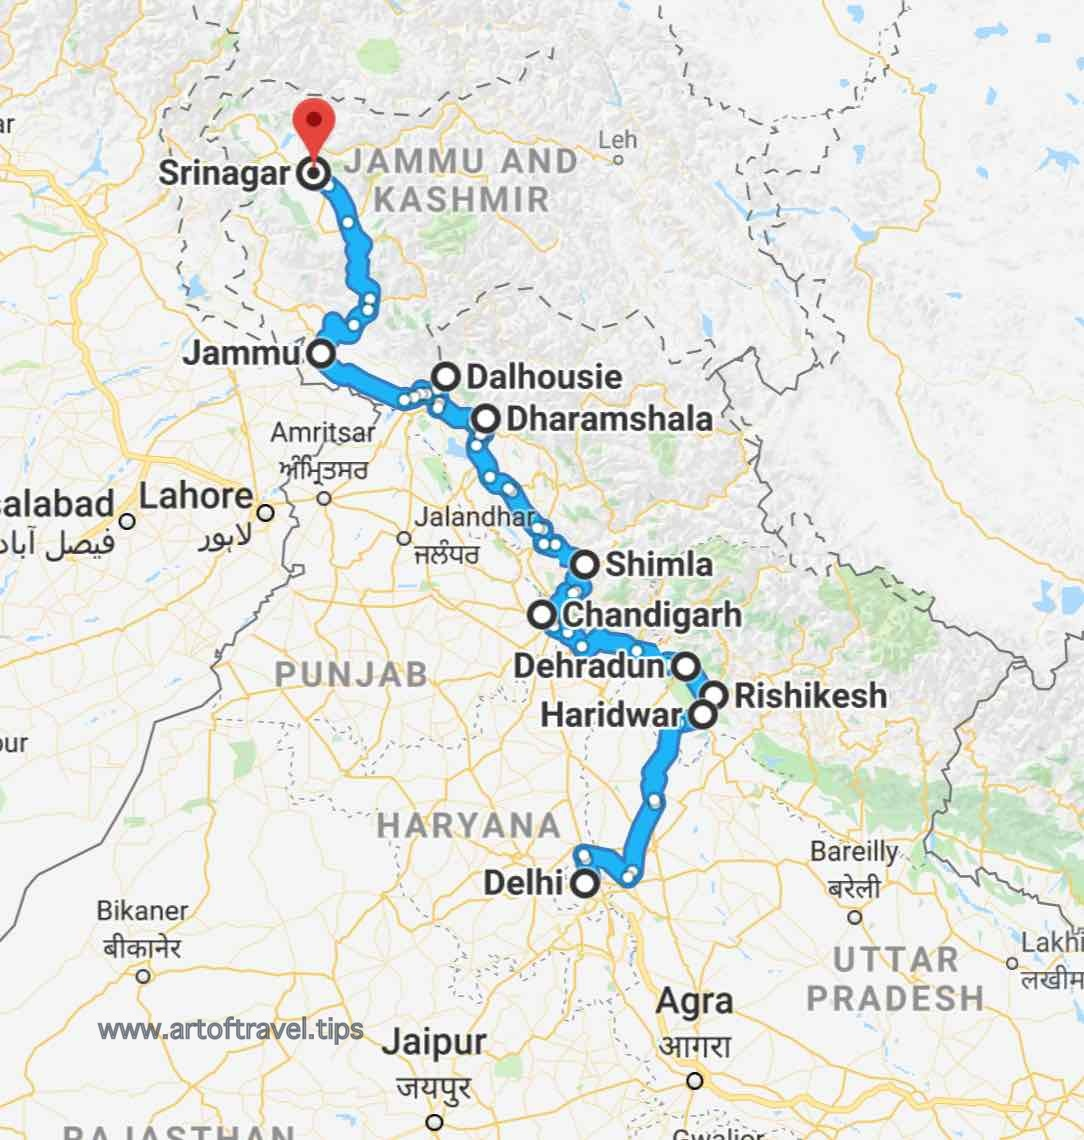 Delhi to Srinagar_All India 29 States Road Trip by Car Bike